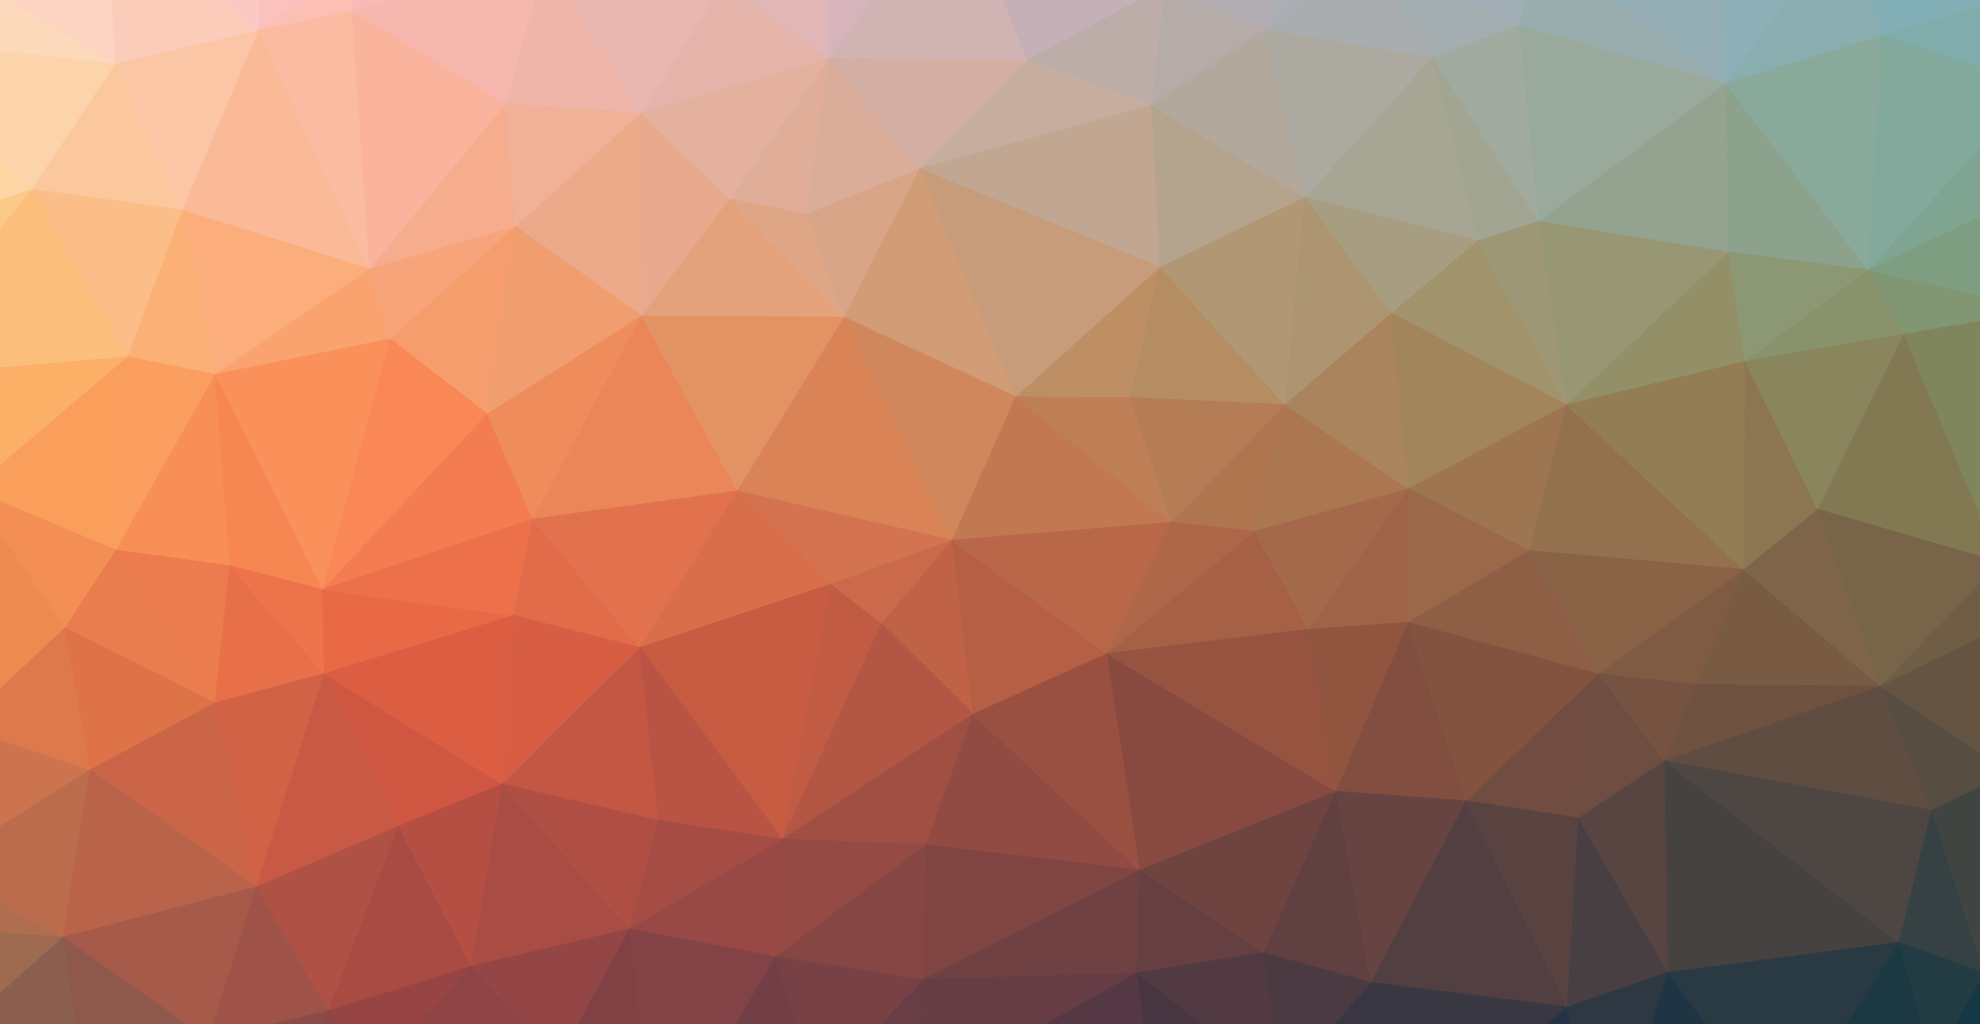 General 1980x1024 triangle abstract gradient soft gradient  Linux blue violet red orange